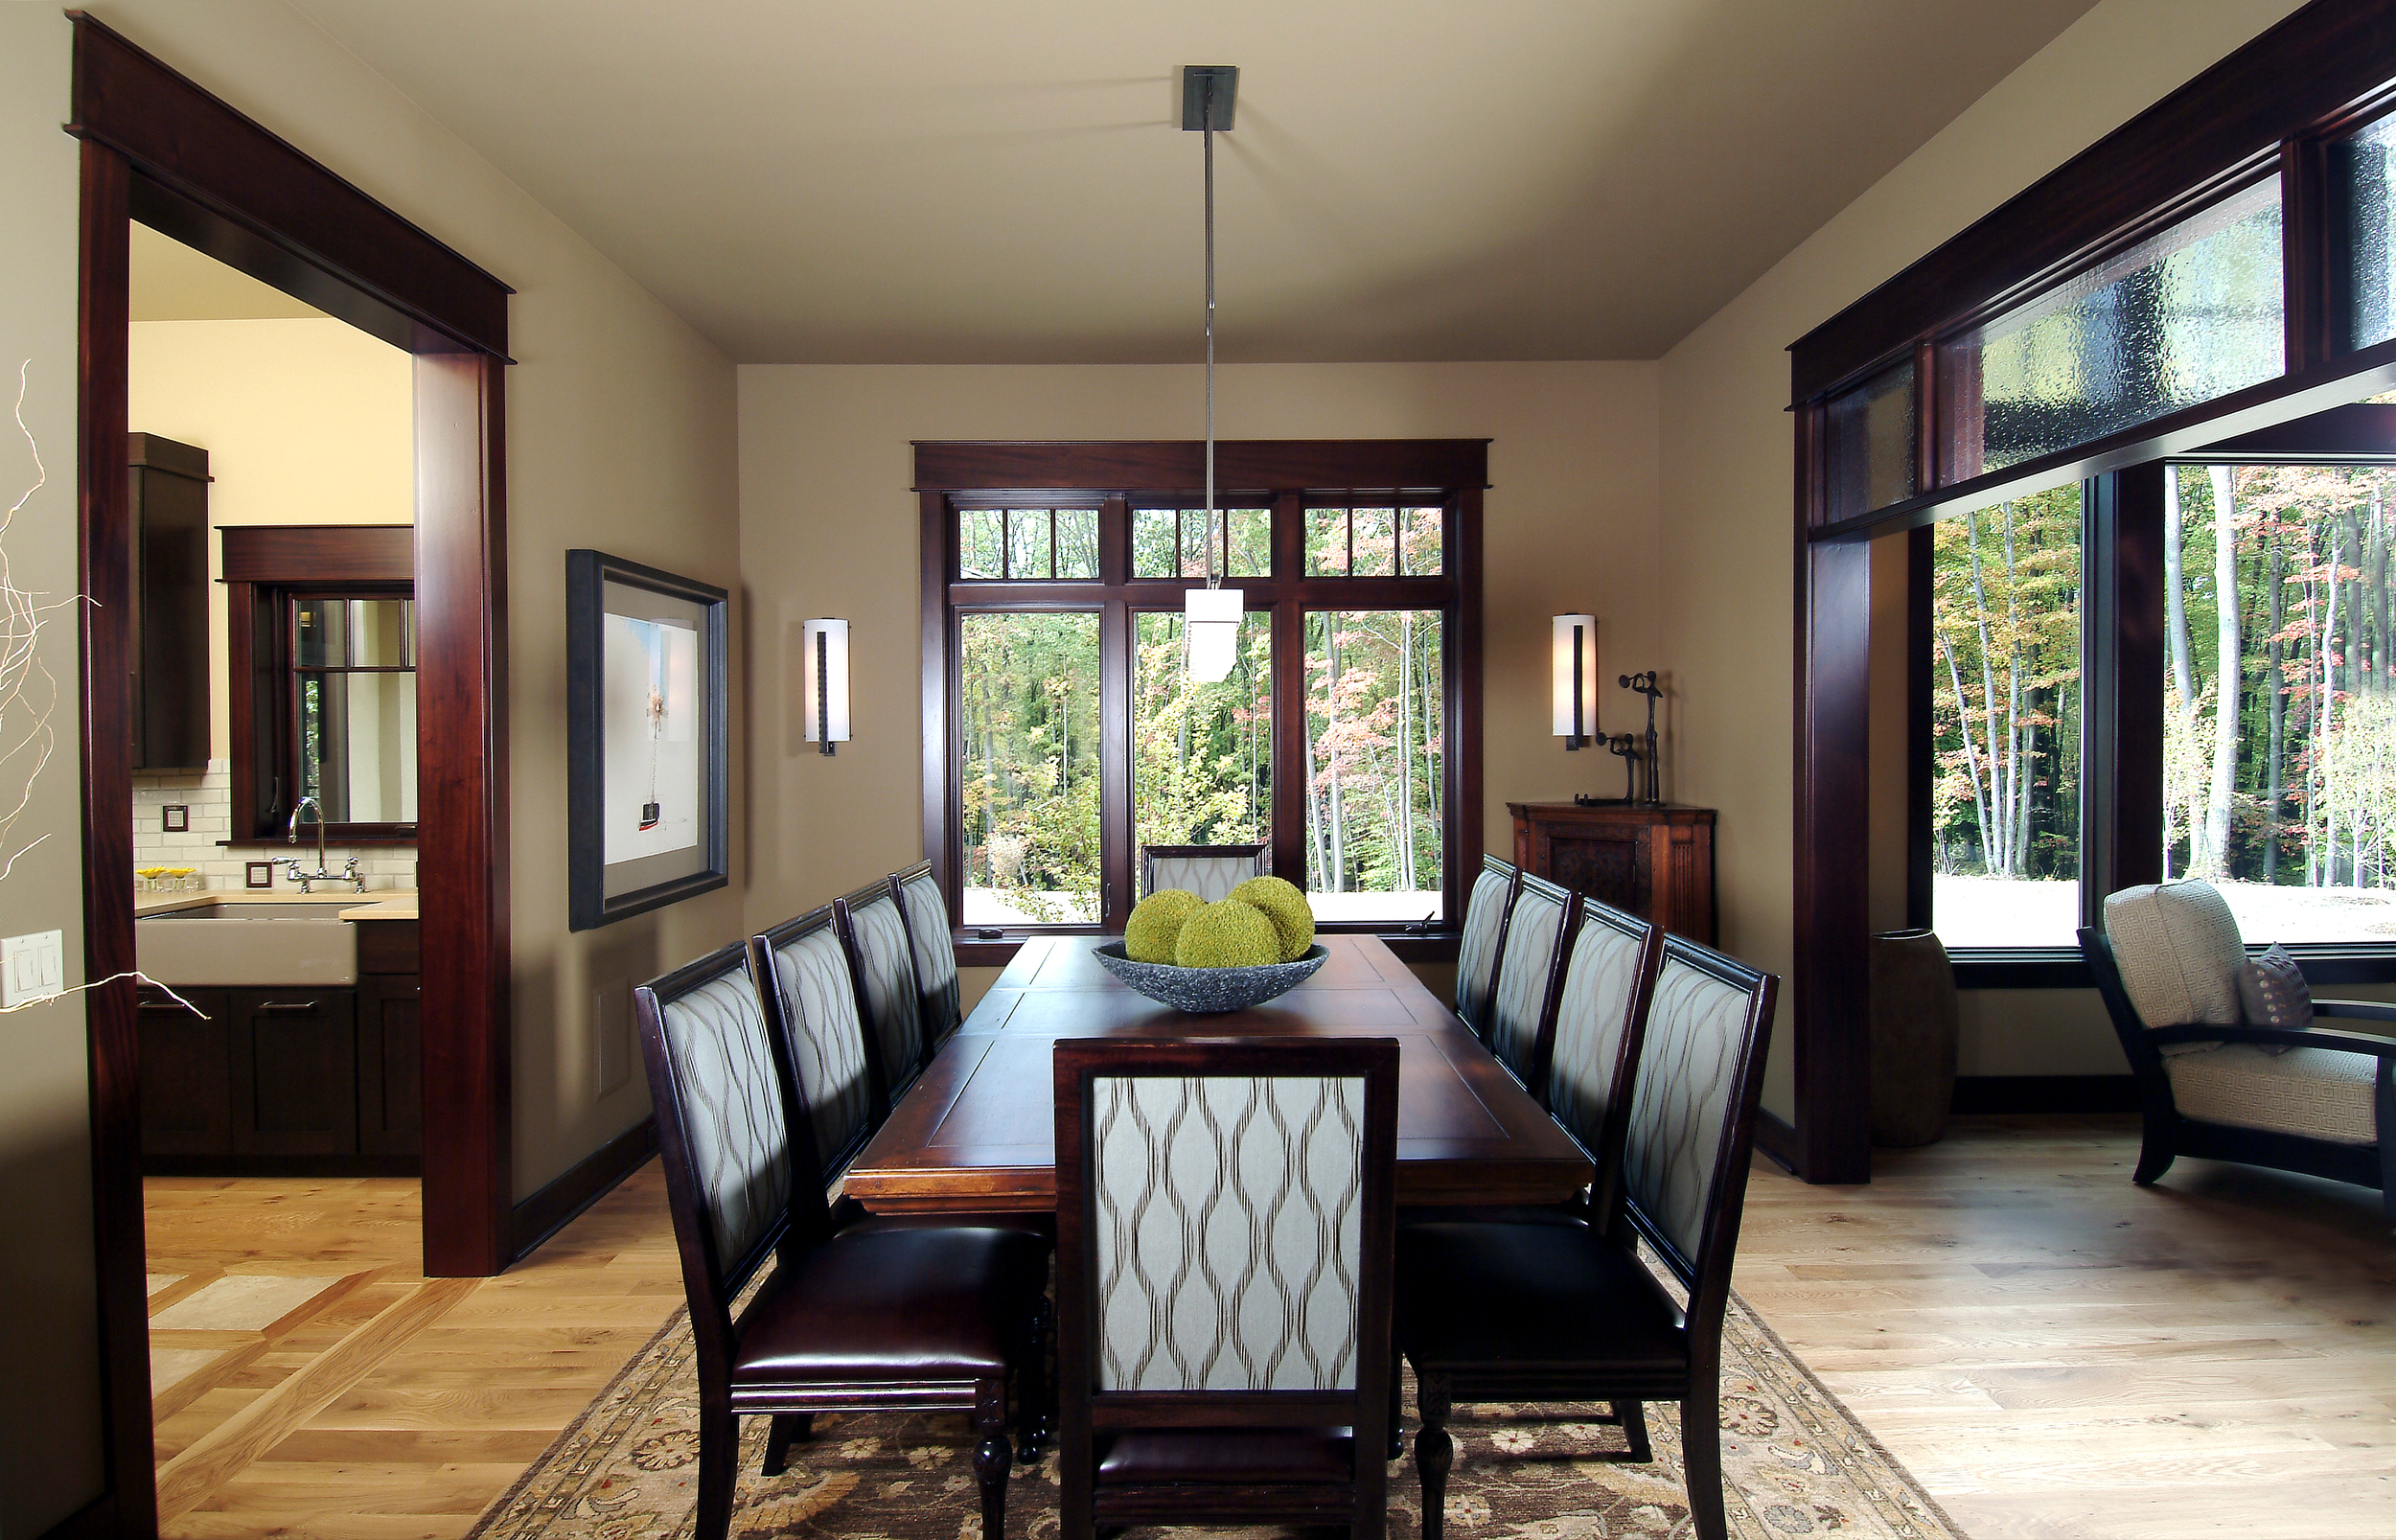 dining area view 1 - 155.jpg